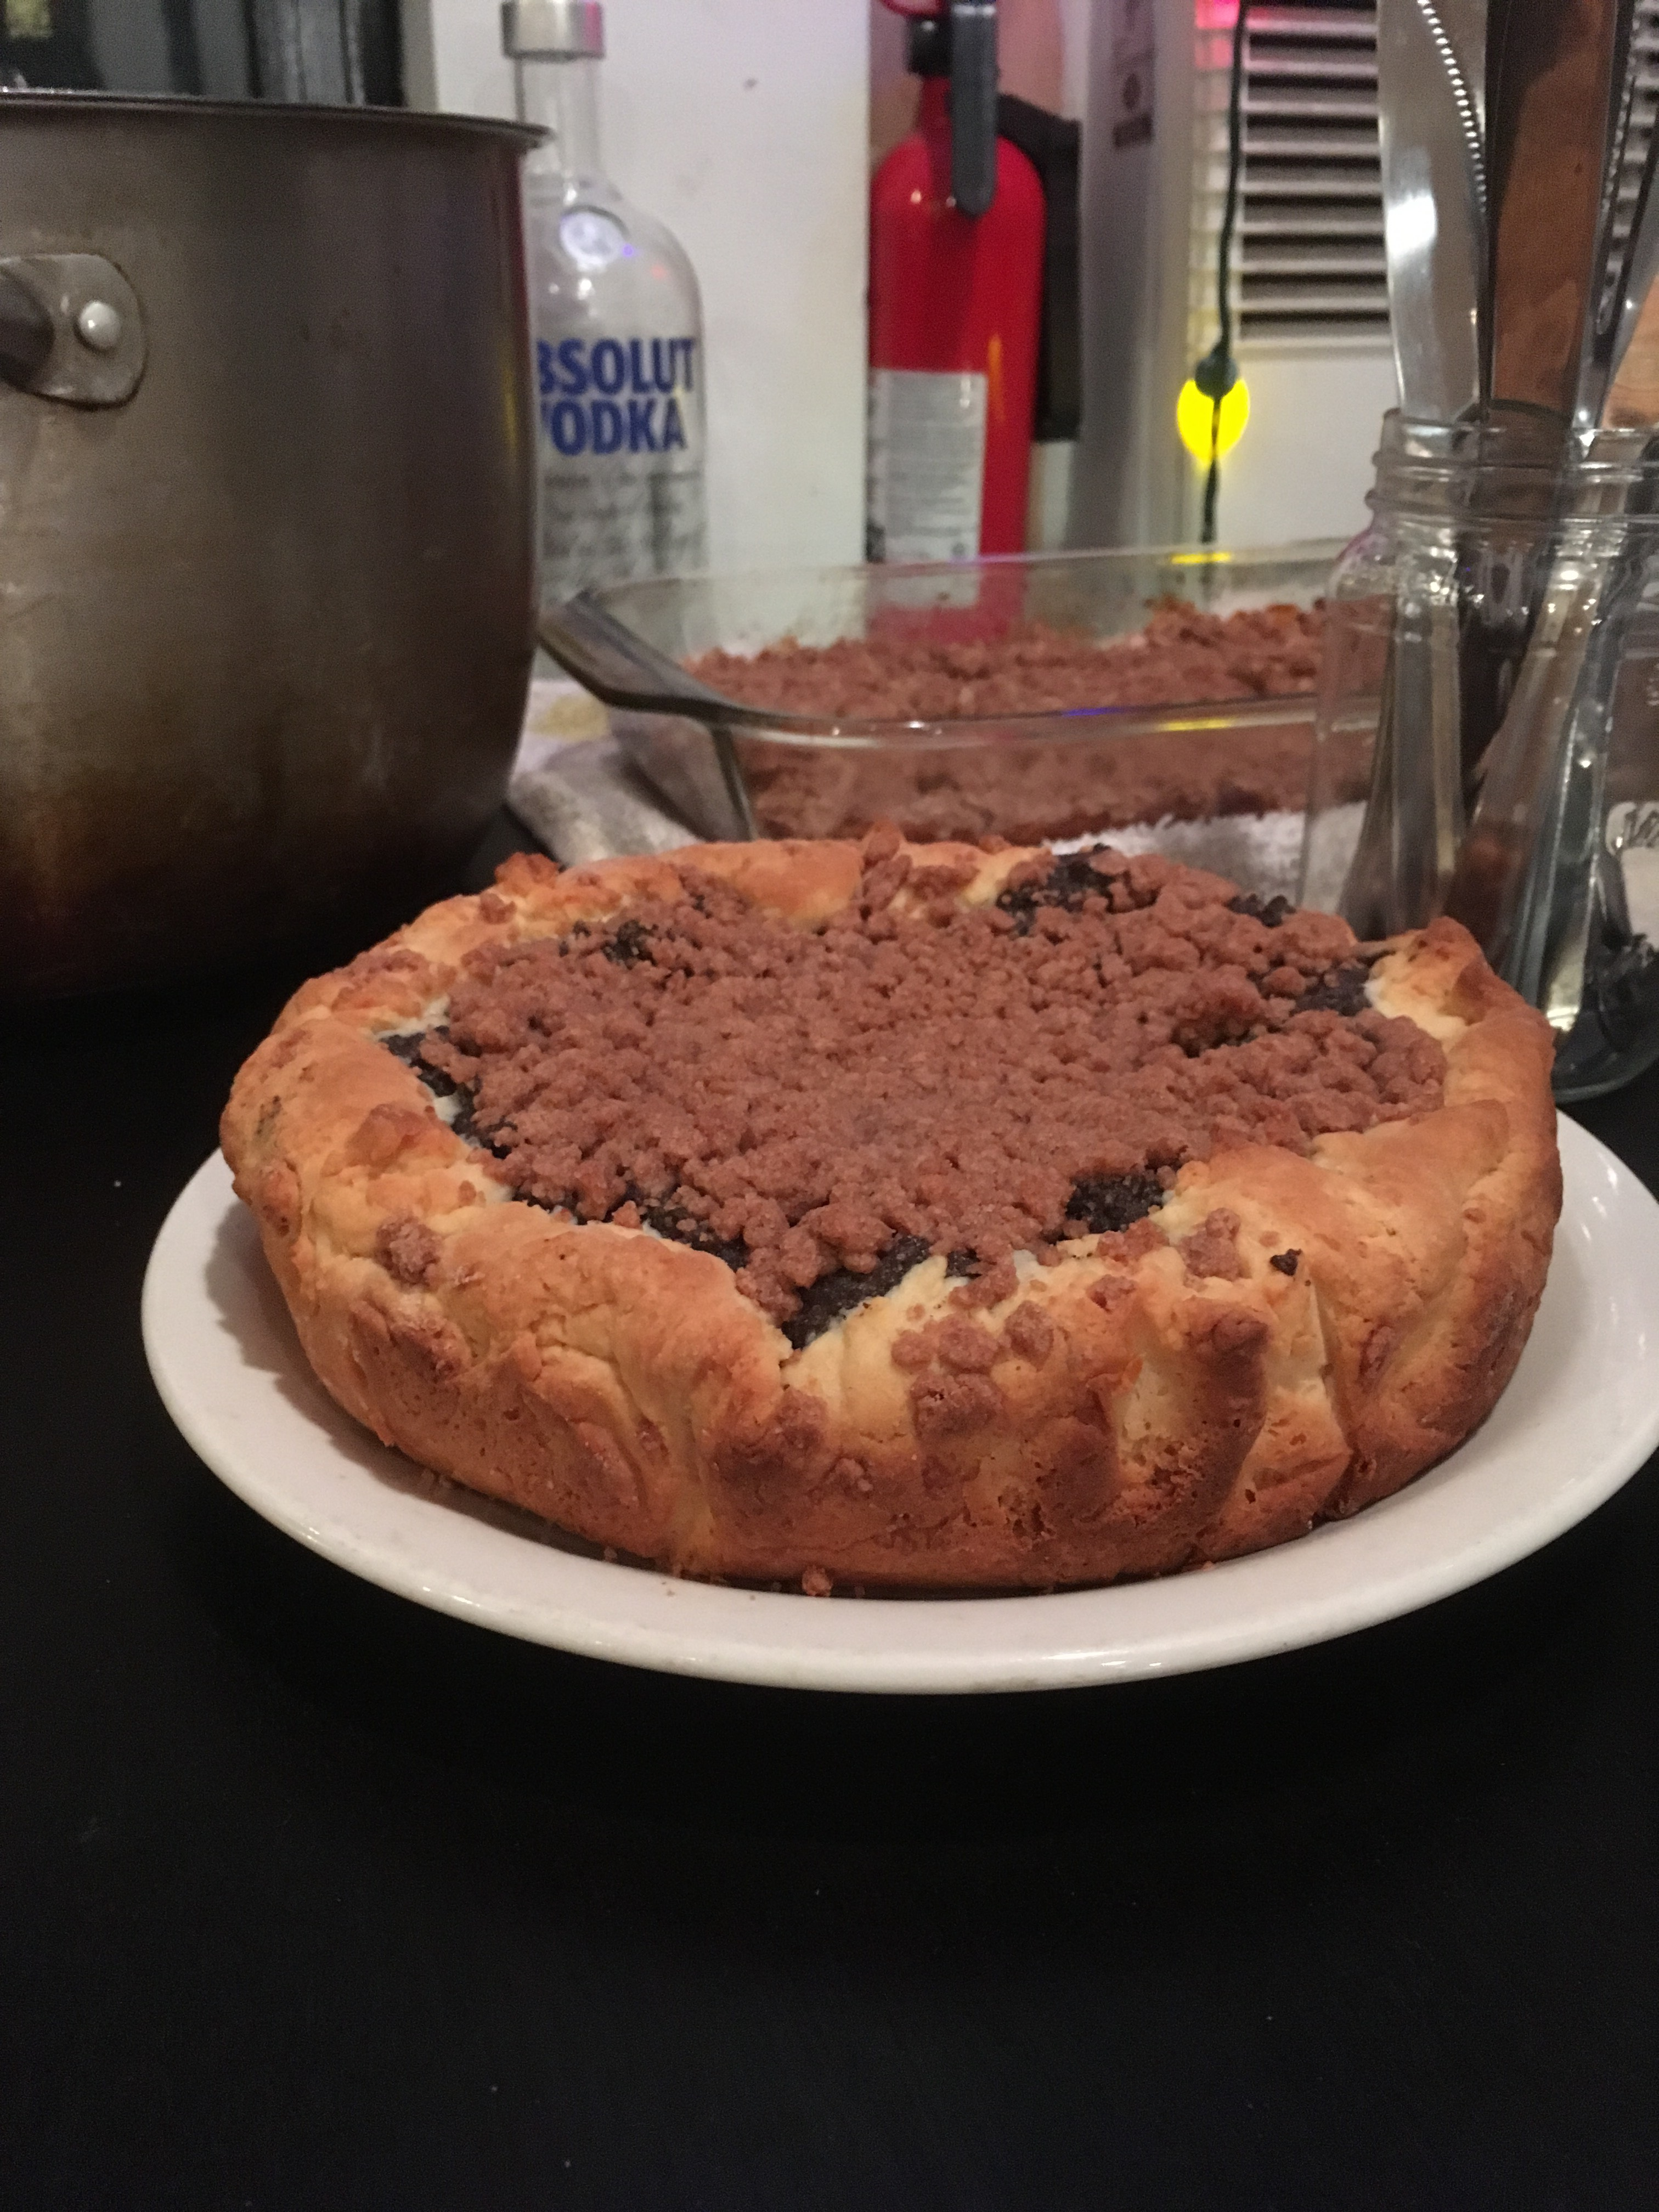 The cake, on a plate, with other dishes in the background